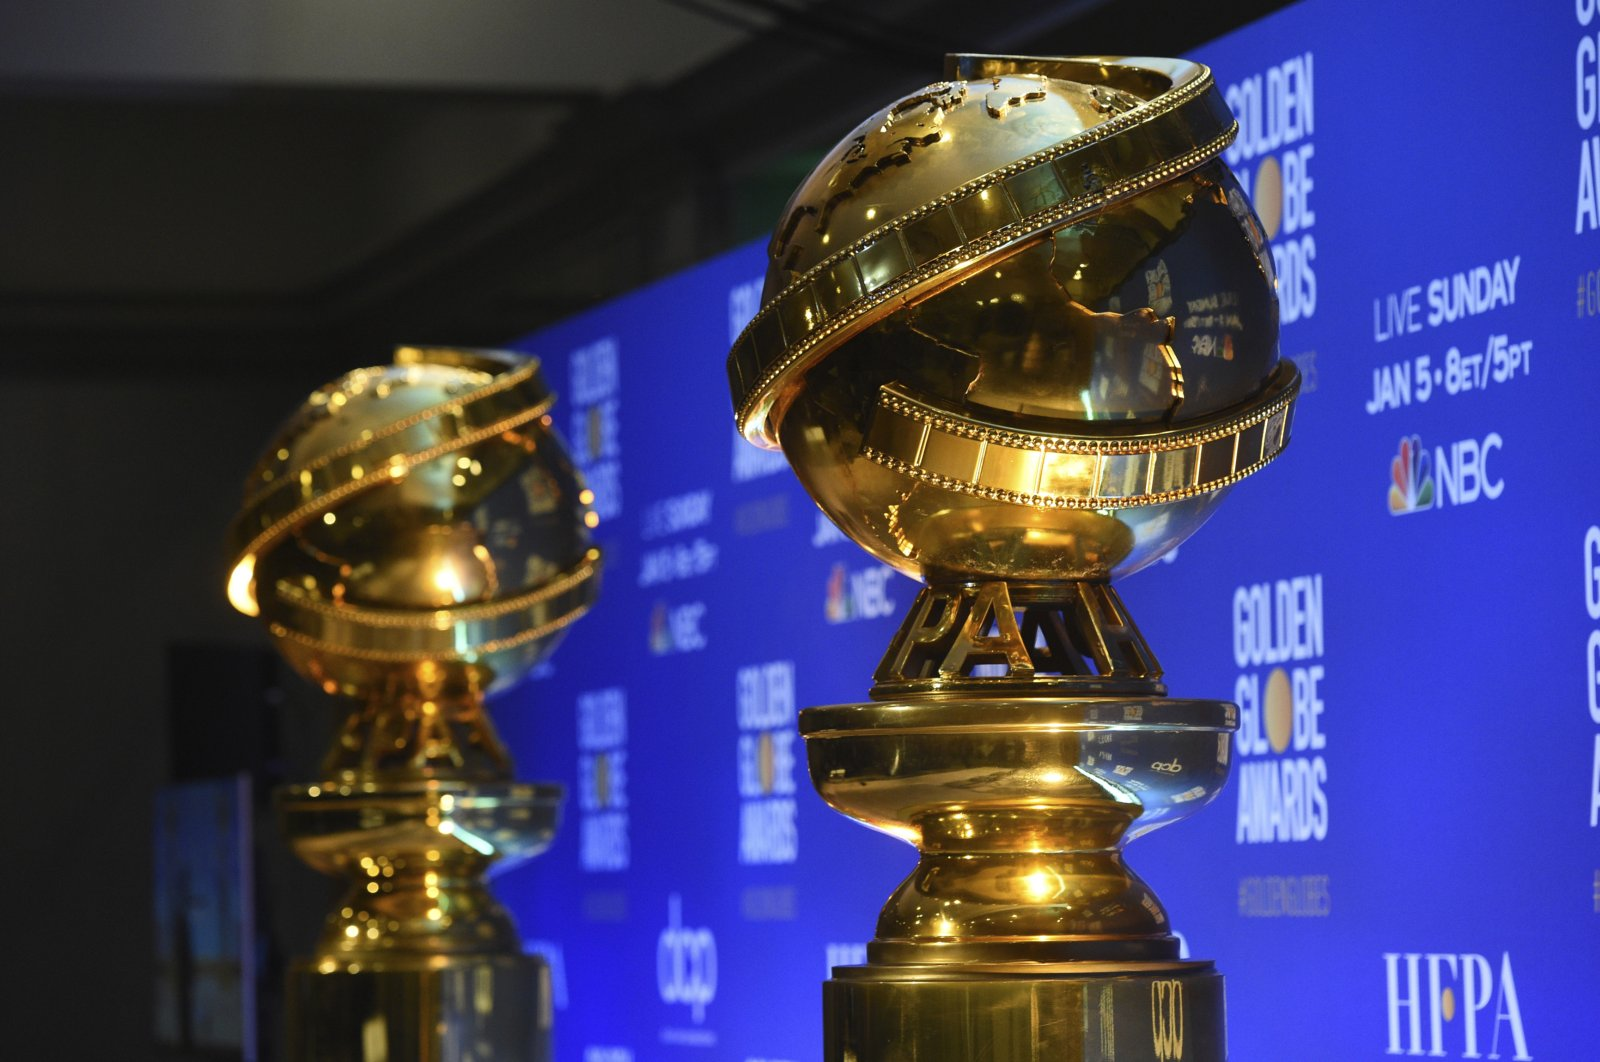 Replicas of Golden Globe statues at the nominations for the 77th annual Golden Globe Awards in Beverly Hills, Calif., U.S. on Dec. 9, 2019. (AP Photo)